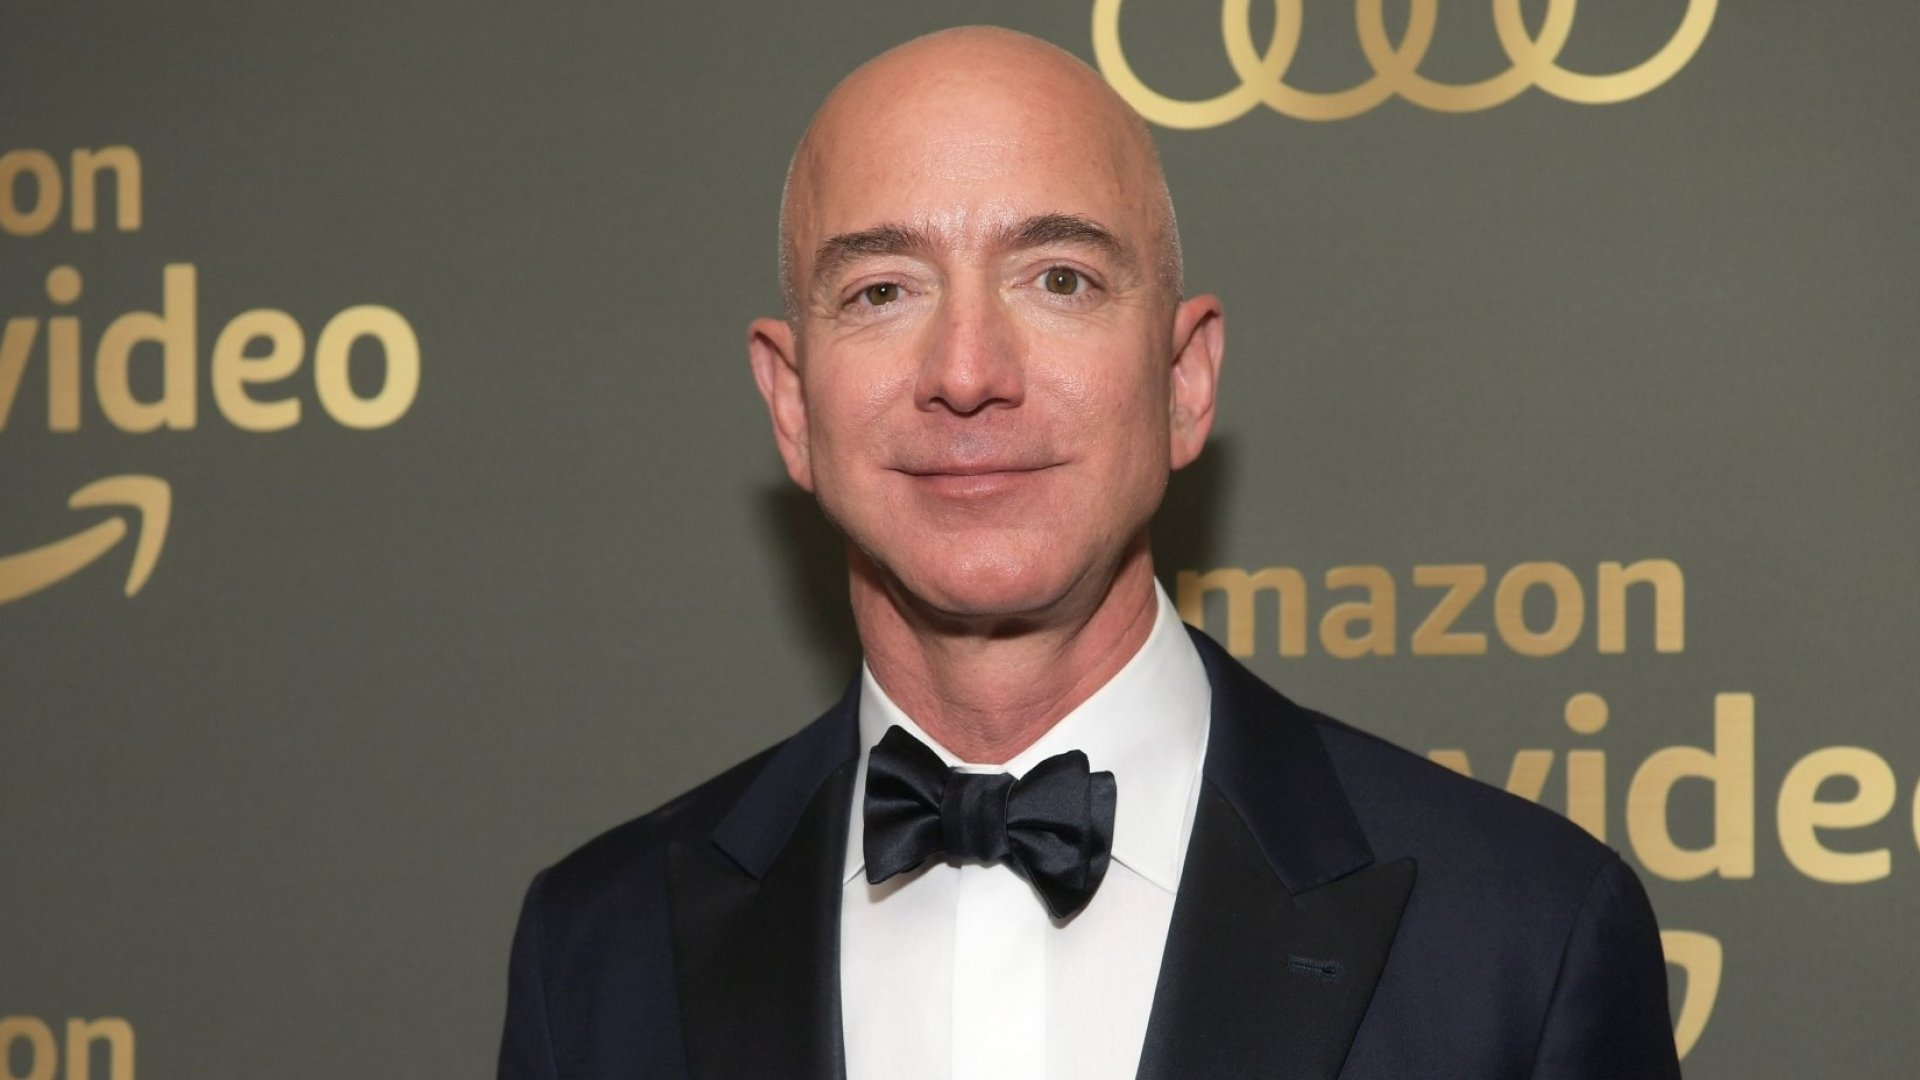 Jeff Bezos is Now in the News for All the Wrong Reasons (Here's Why We Should Move On)